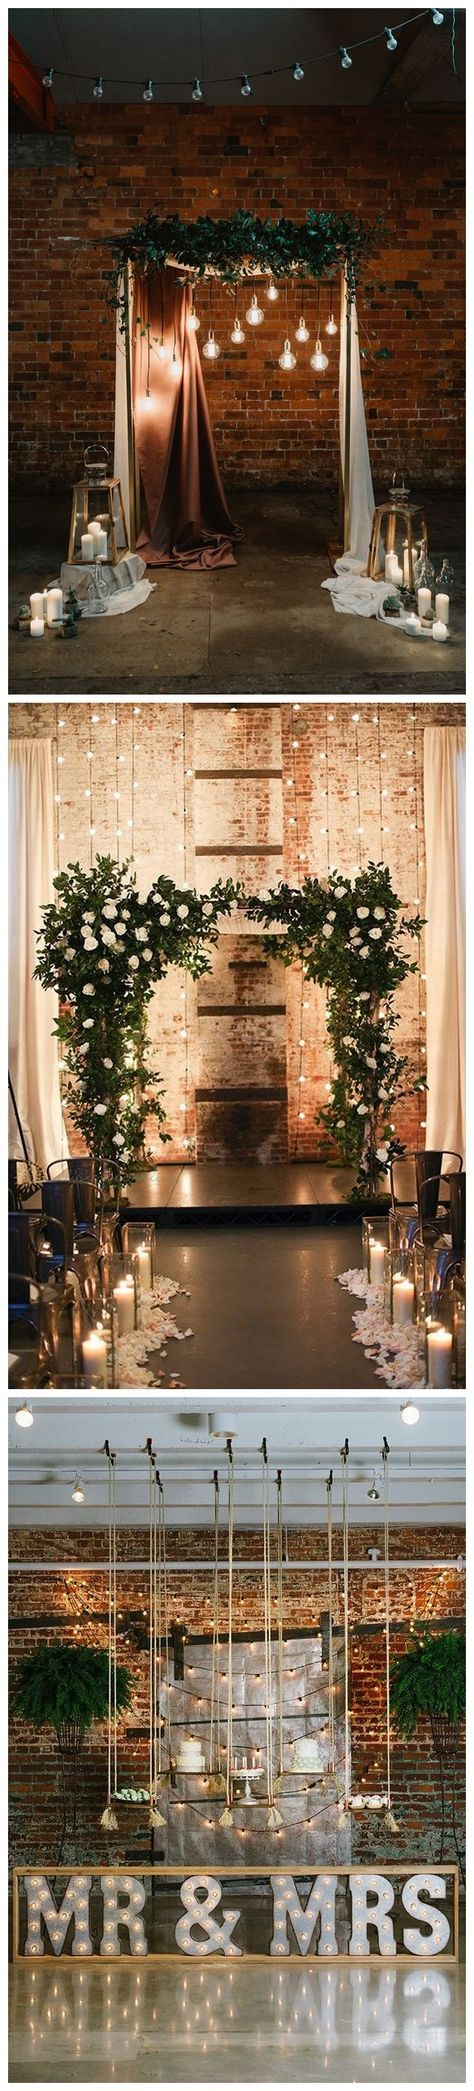 Wedding decorations stage backdrops october 2018  Industrial Loftstyle Wedding Ceremony Backdrop Ideas  Rustic